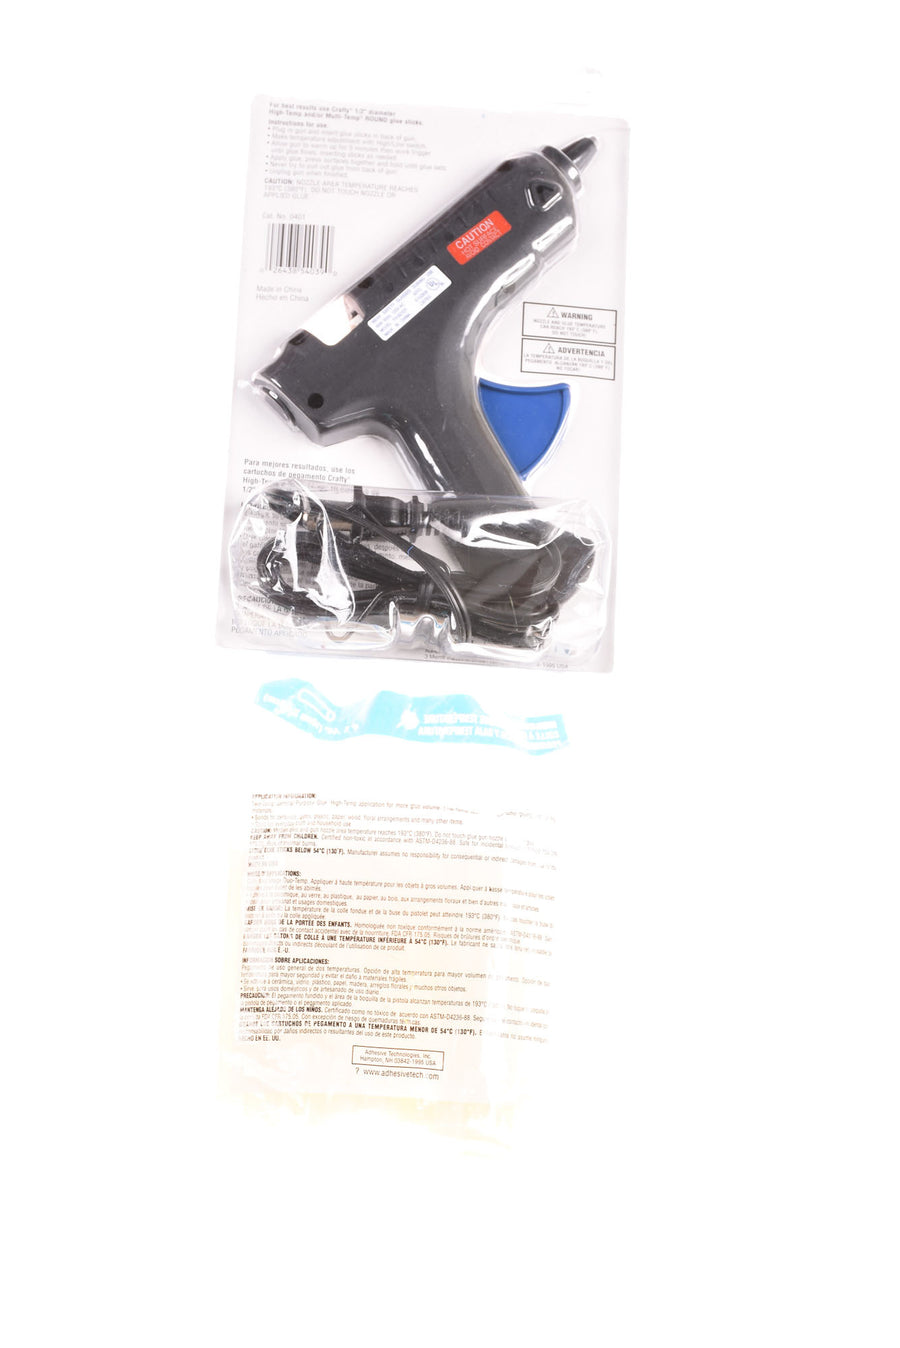 NEW Adhesives Technologies Glue Gun N/A Black